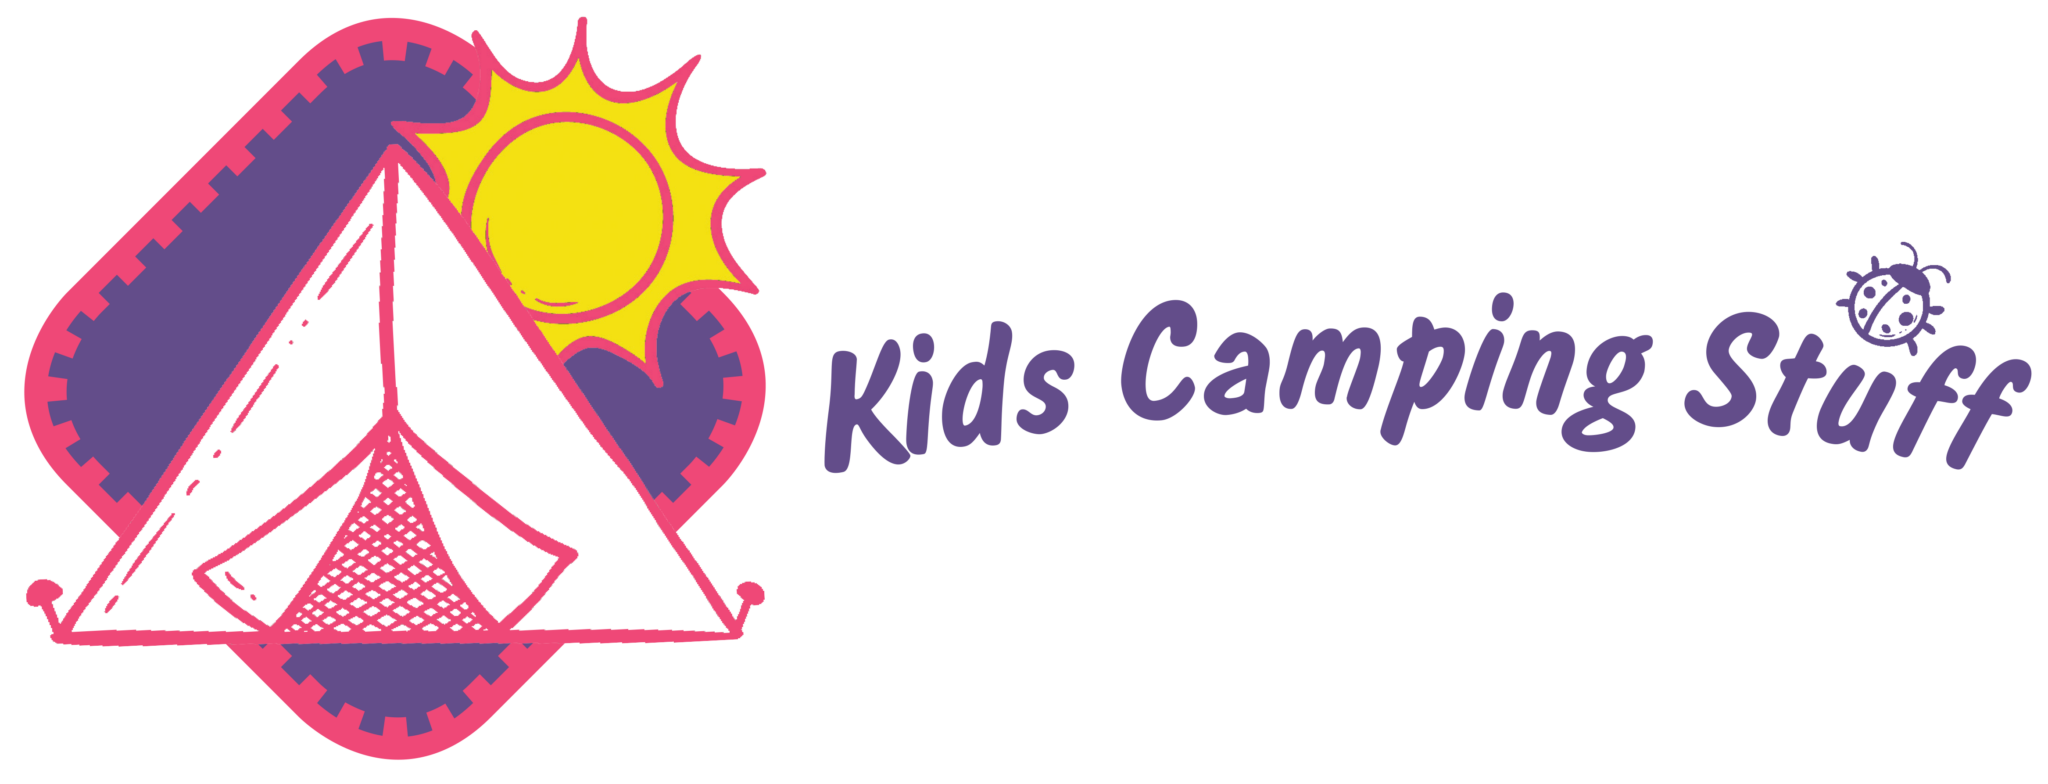 Kids Camping Stuff – Toys, Games, Camping & Outdoor Gear